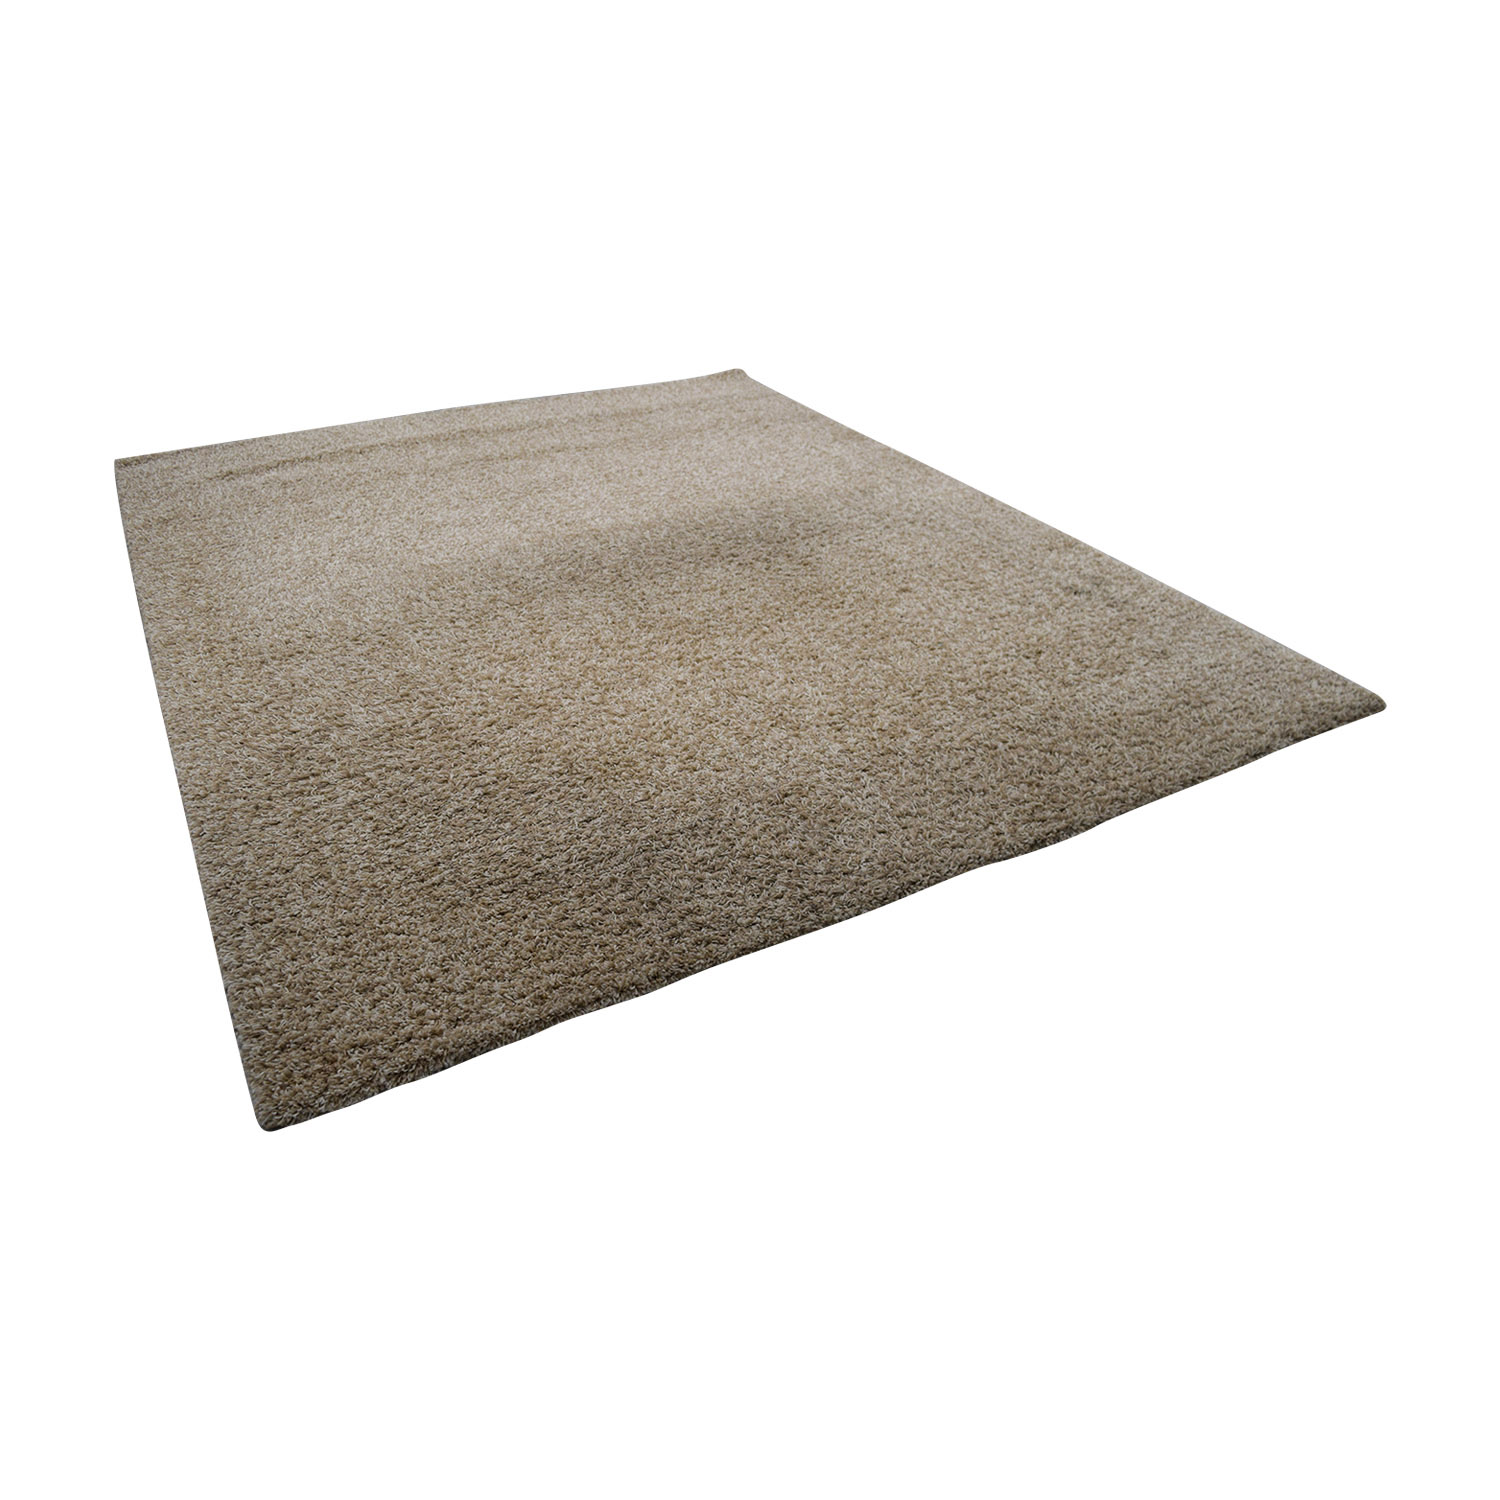 Beige Shag Rug / Decor